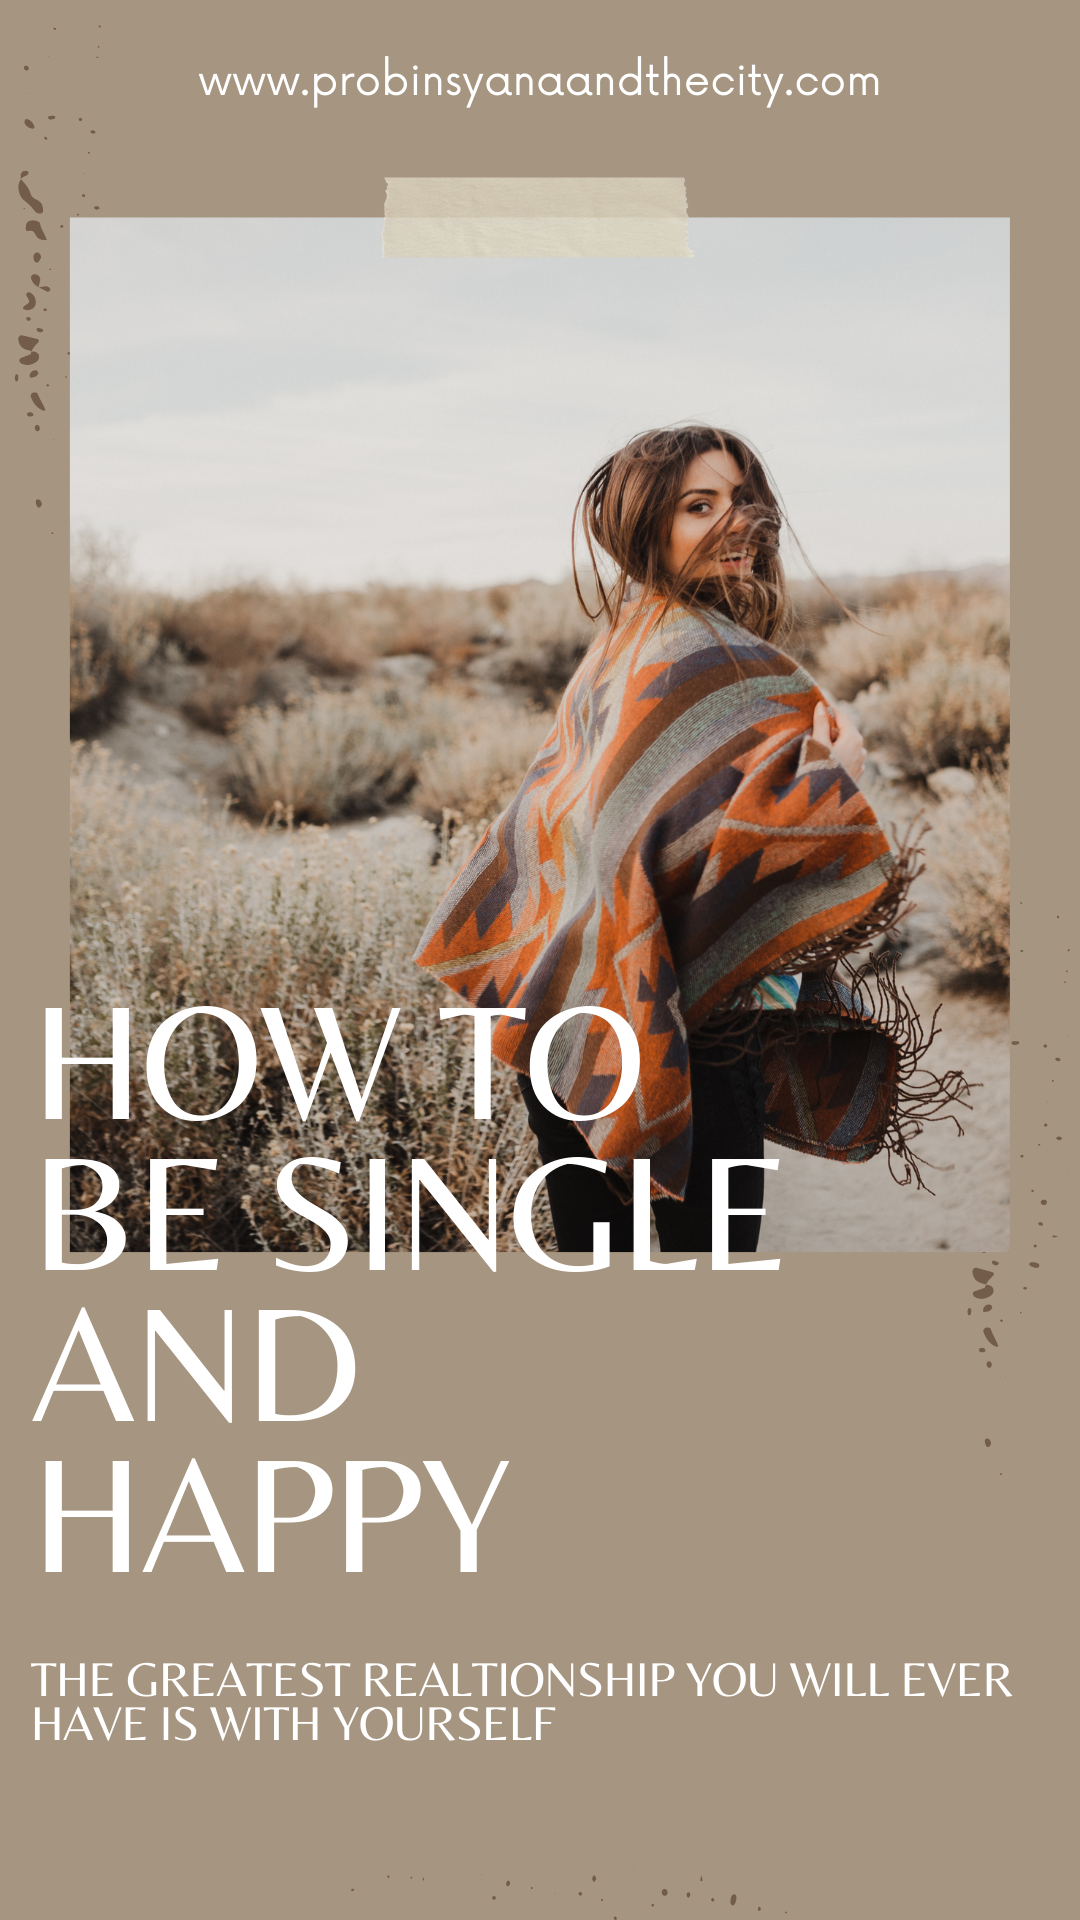 HOW TO BE SINGLE AND HAPPY – Probinsyana and the City